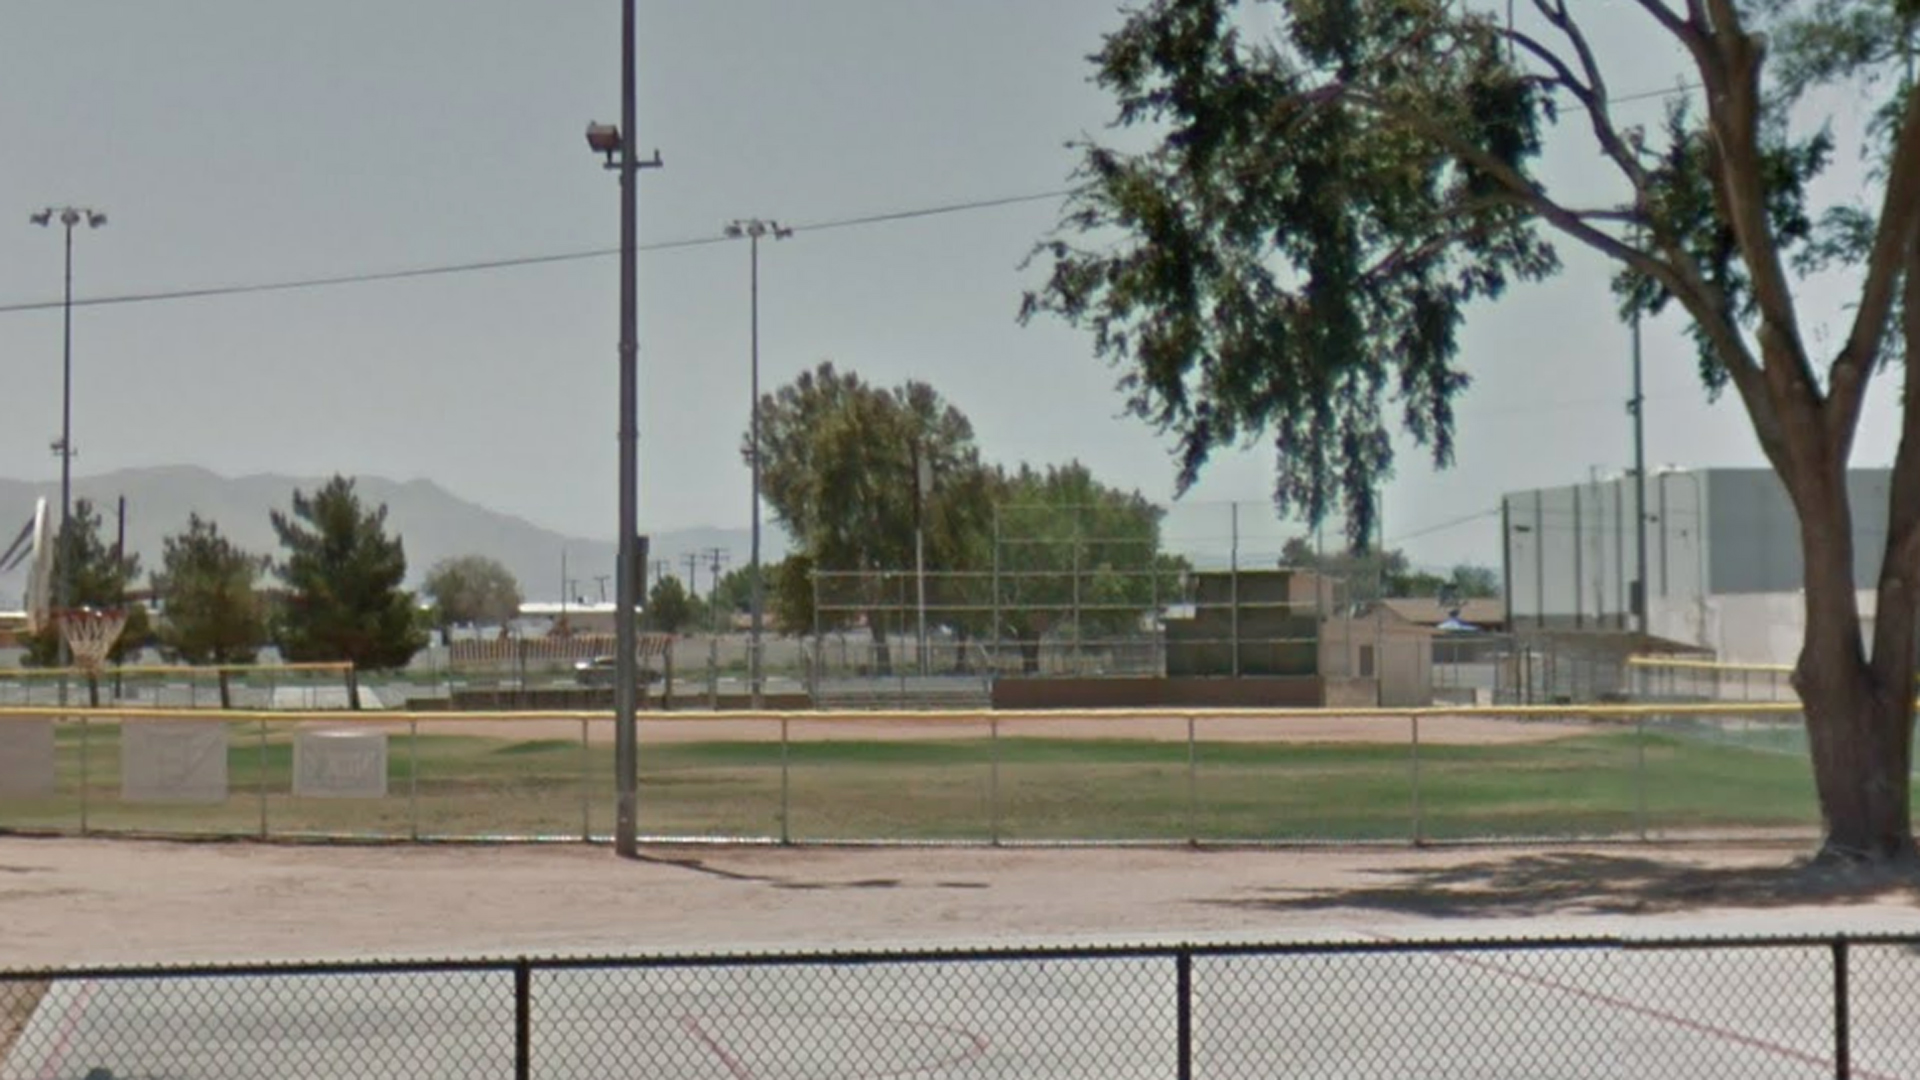 A Little League field at James Woody Park is seen in this street view image from Google Maps.